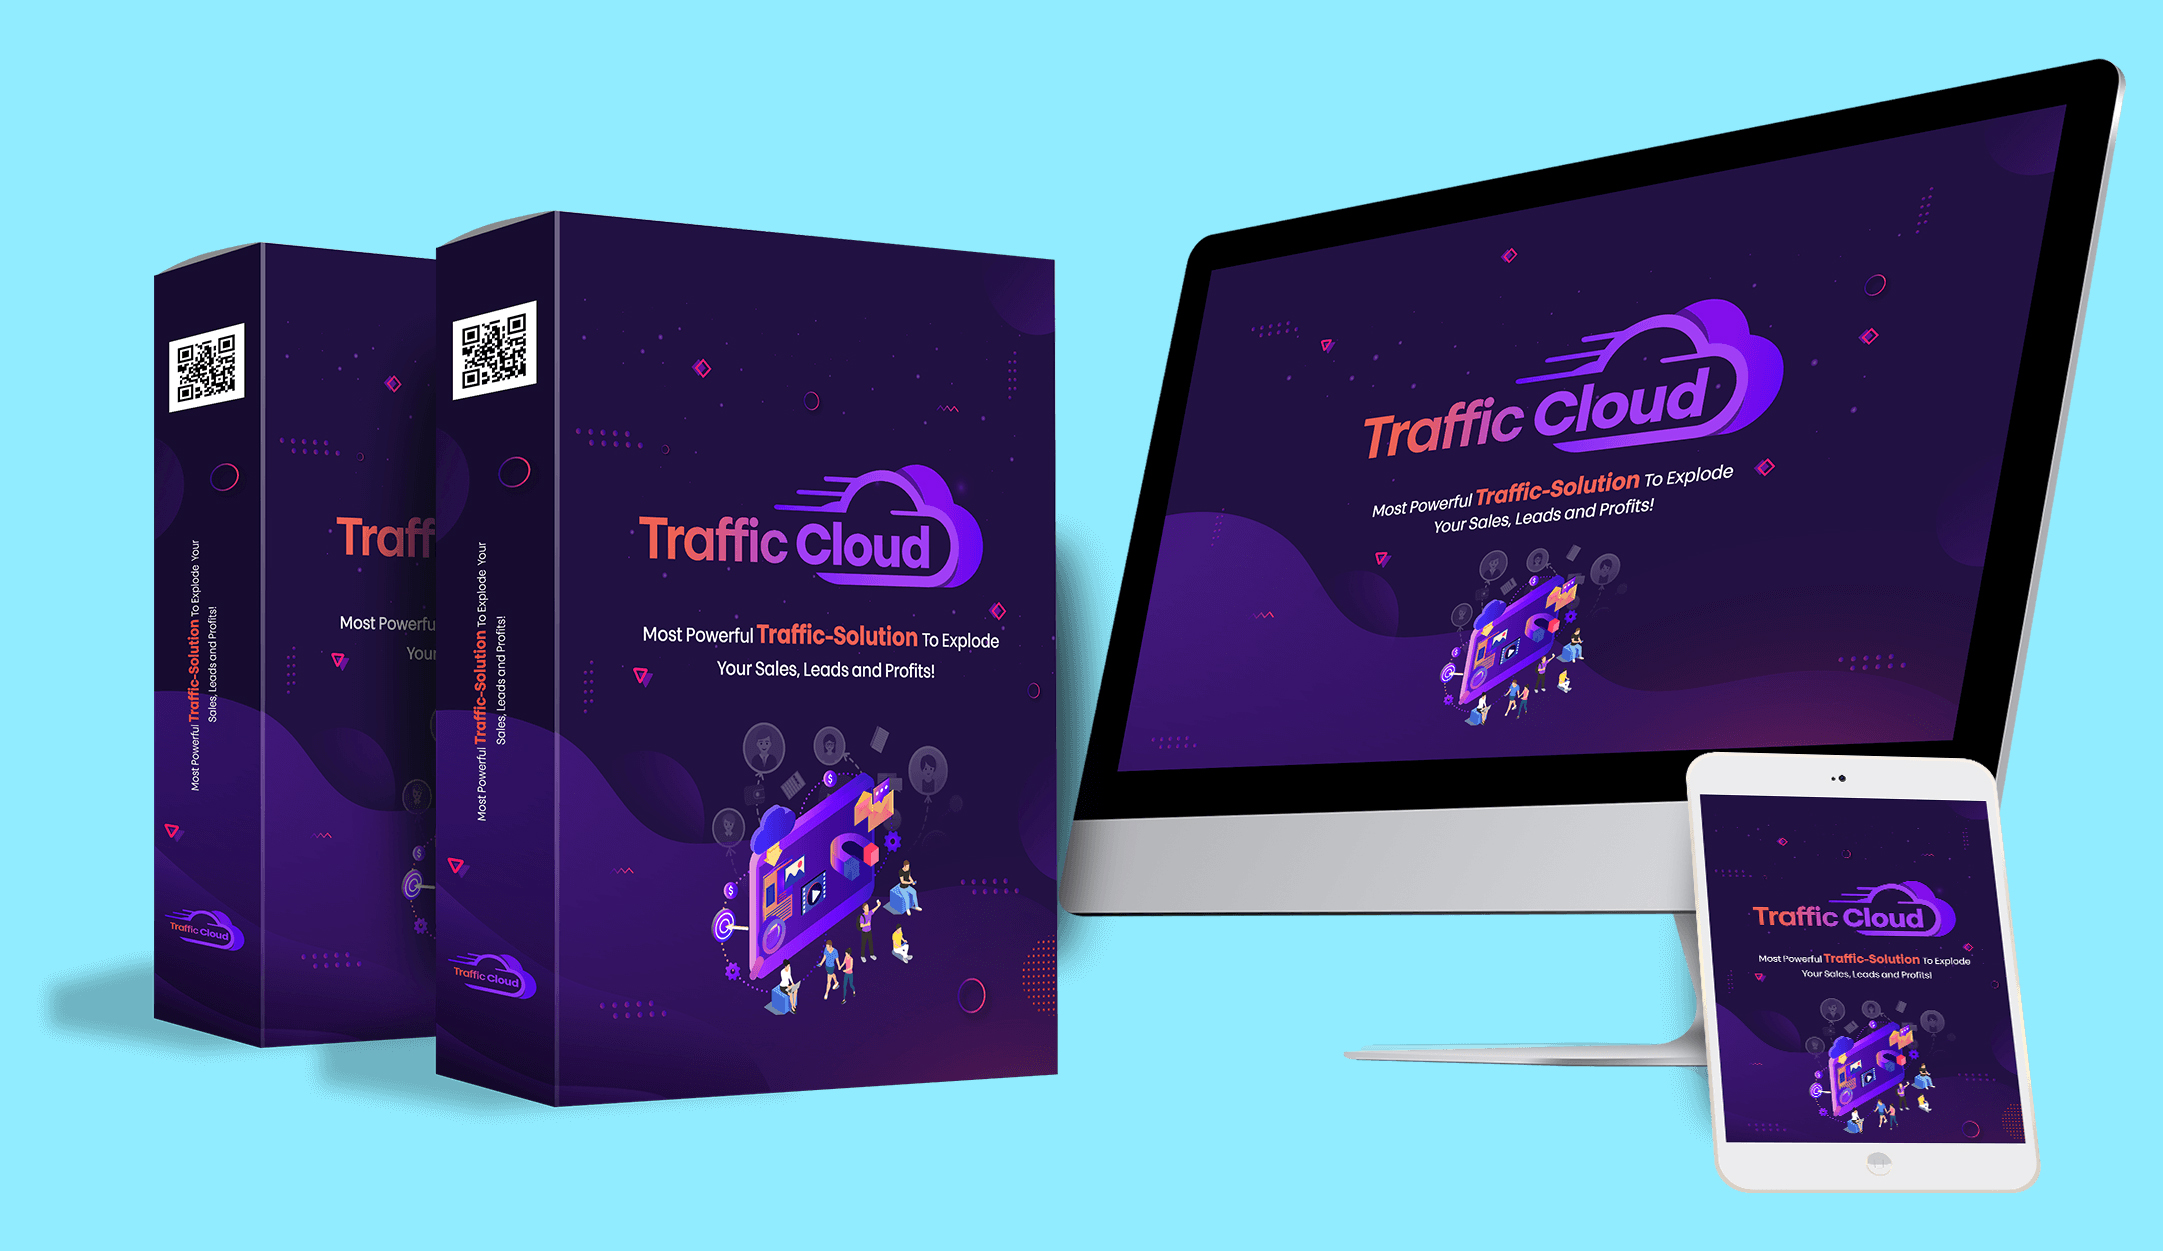 Traffic Cloud: Brand New Social Media Marketing Tool From Eric Holmlund – Release Date: May 2, 2020